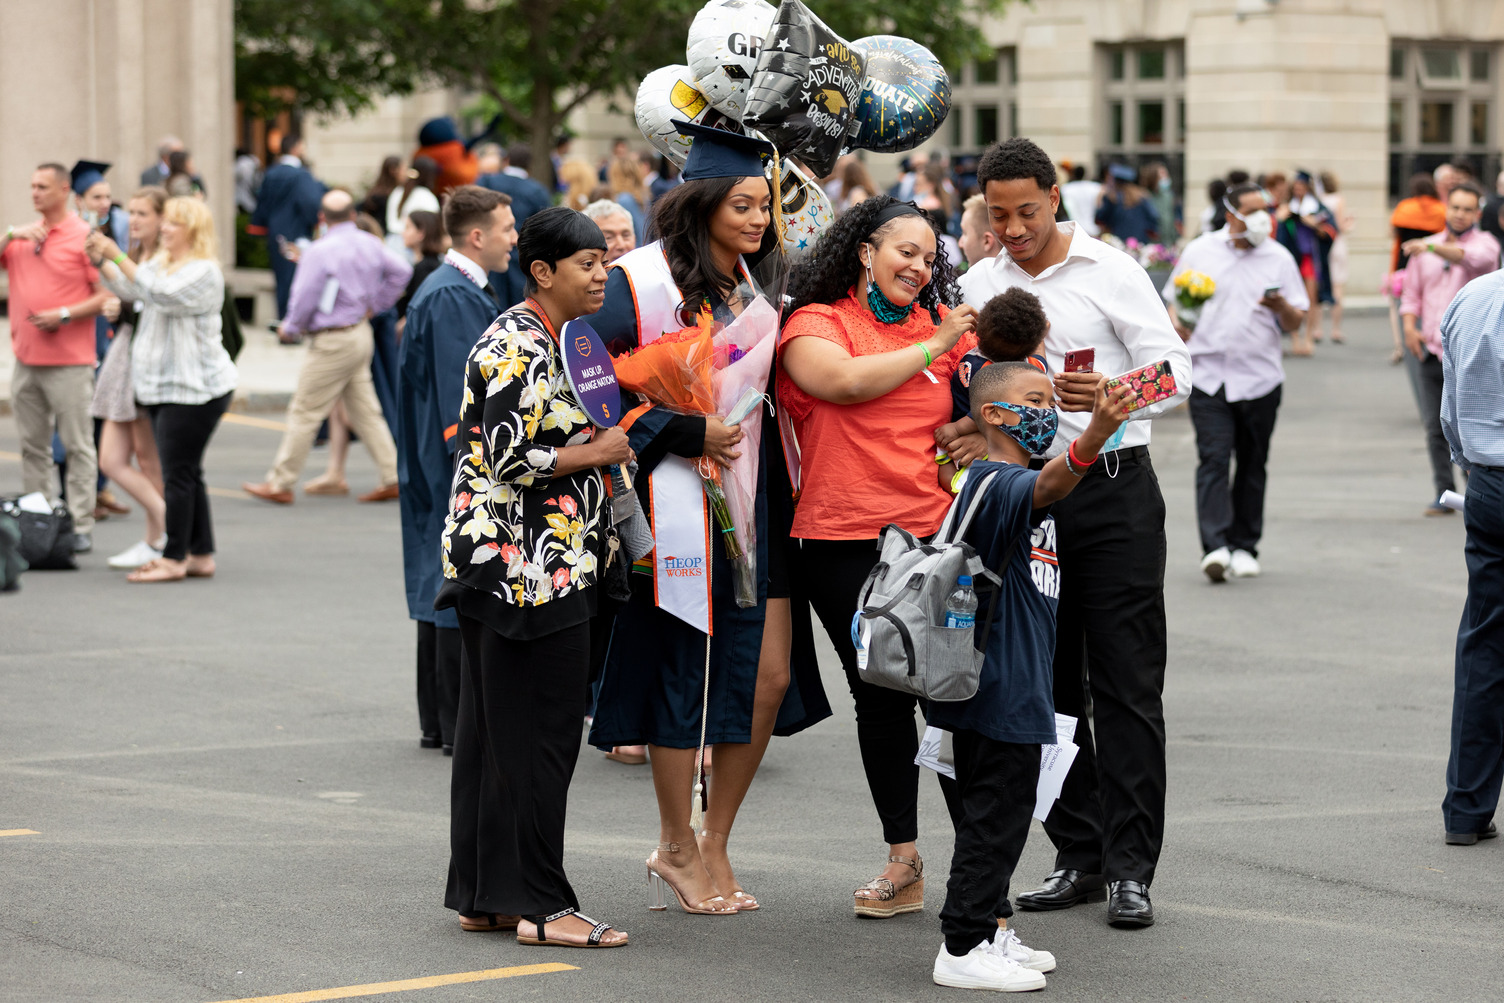 a graduate and their family celebrating and taking photos outside